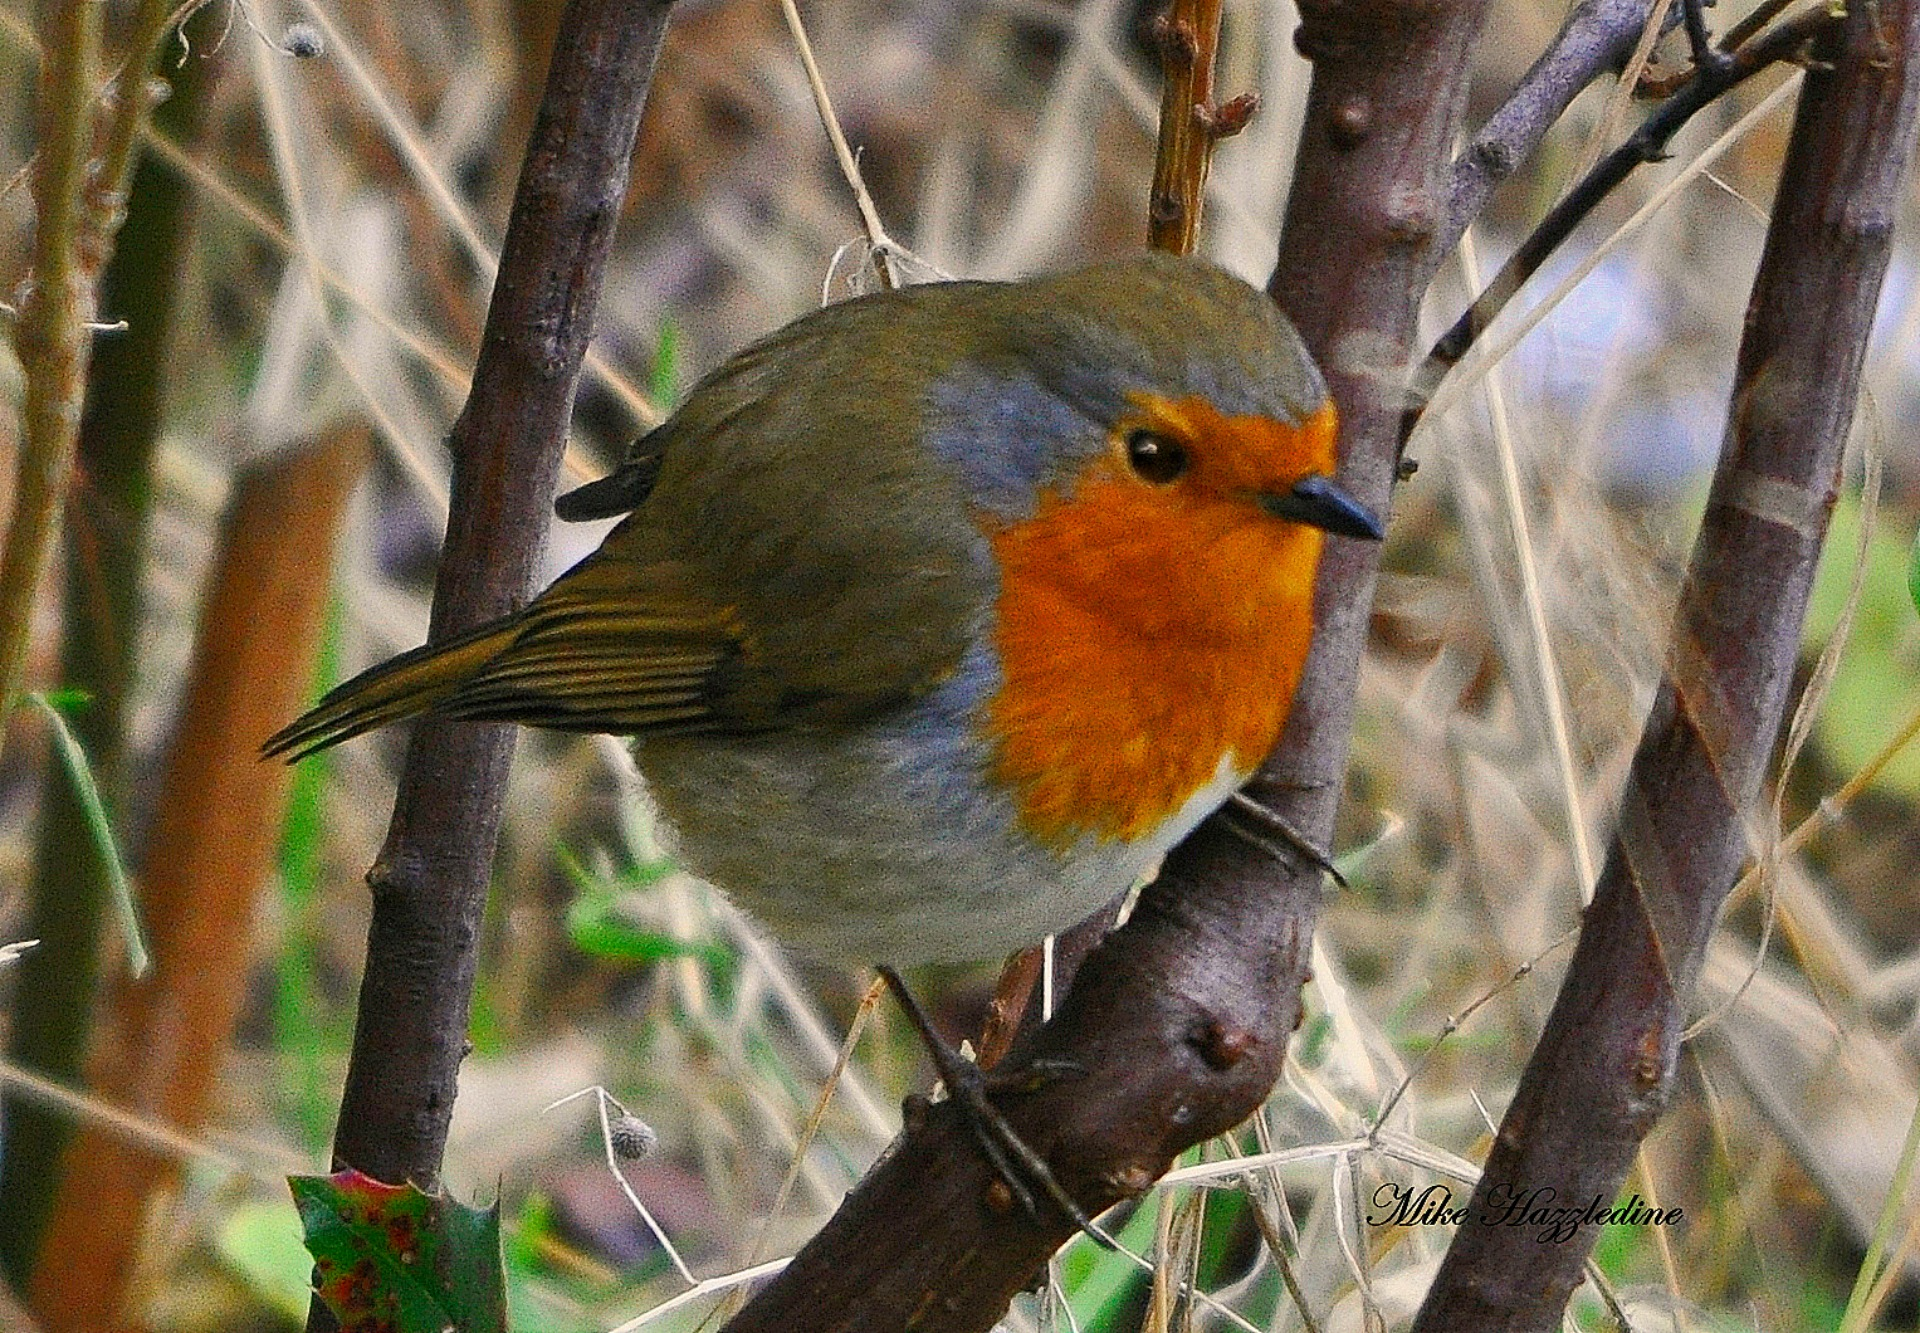 Should the robin be the UK's national bird?